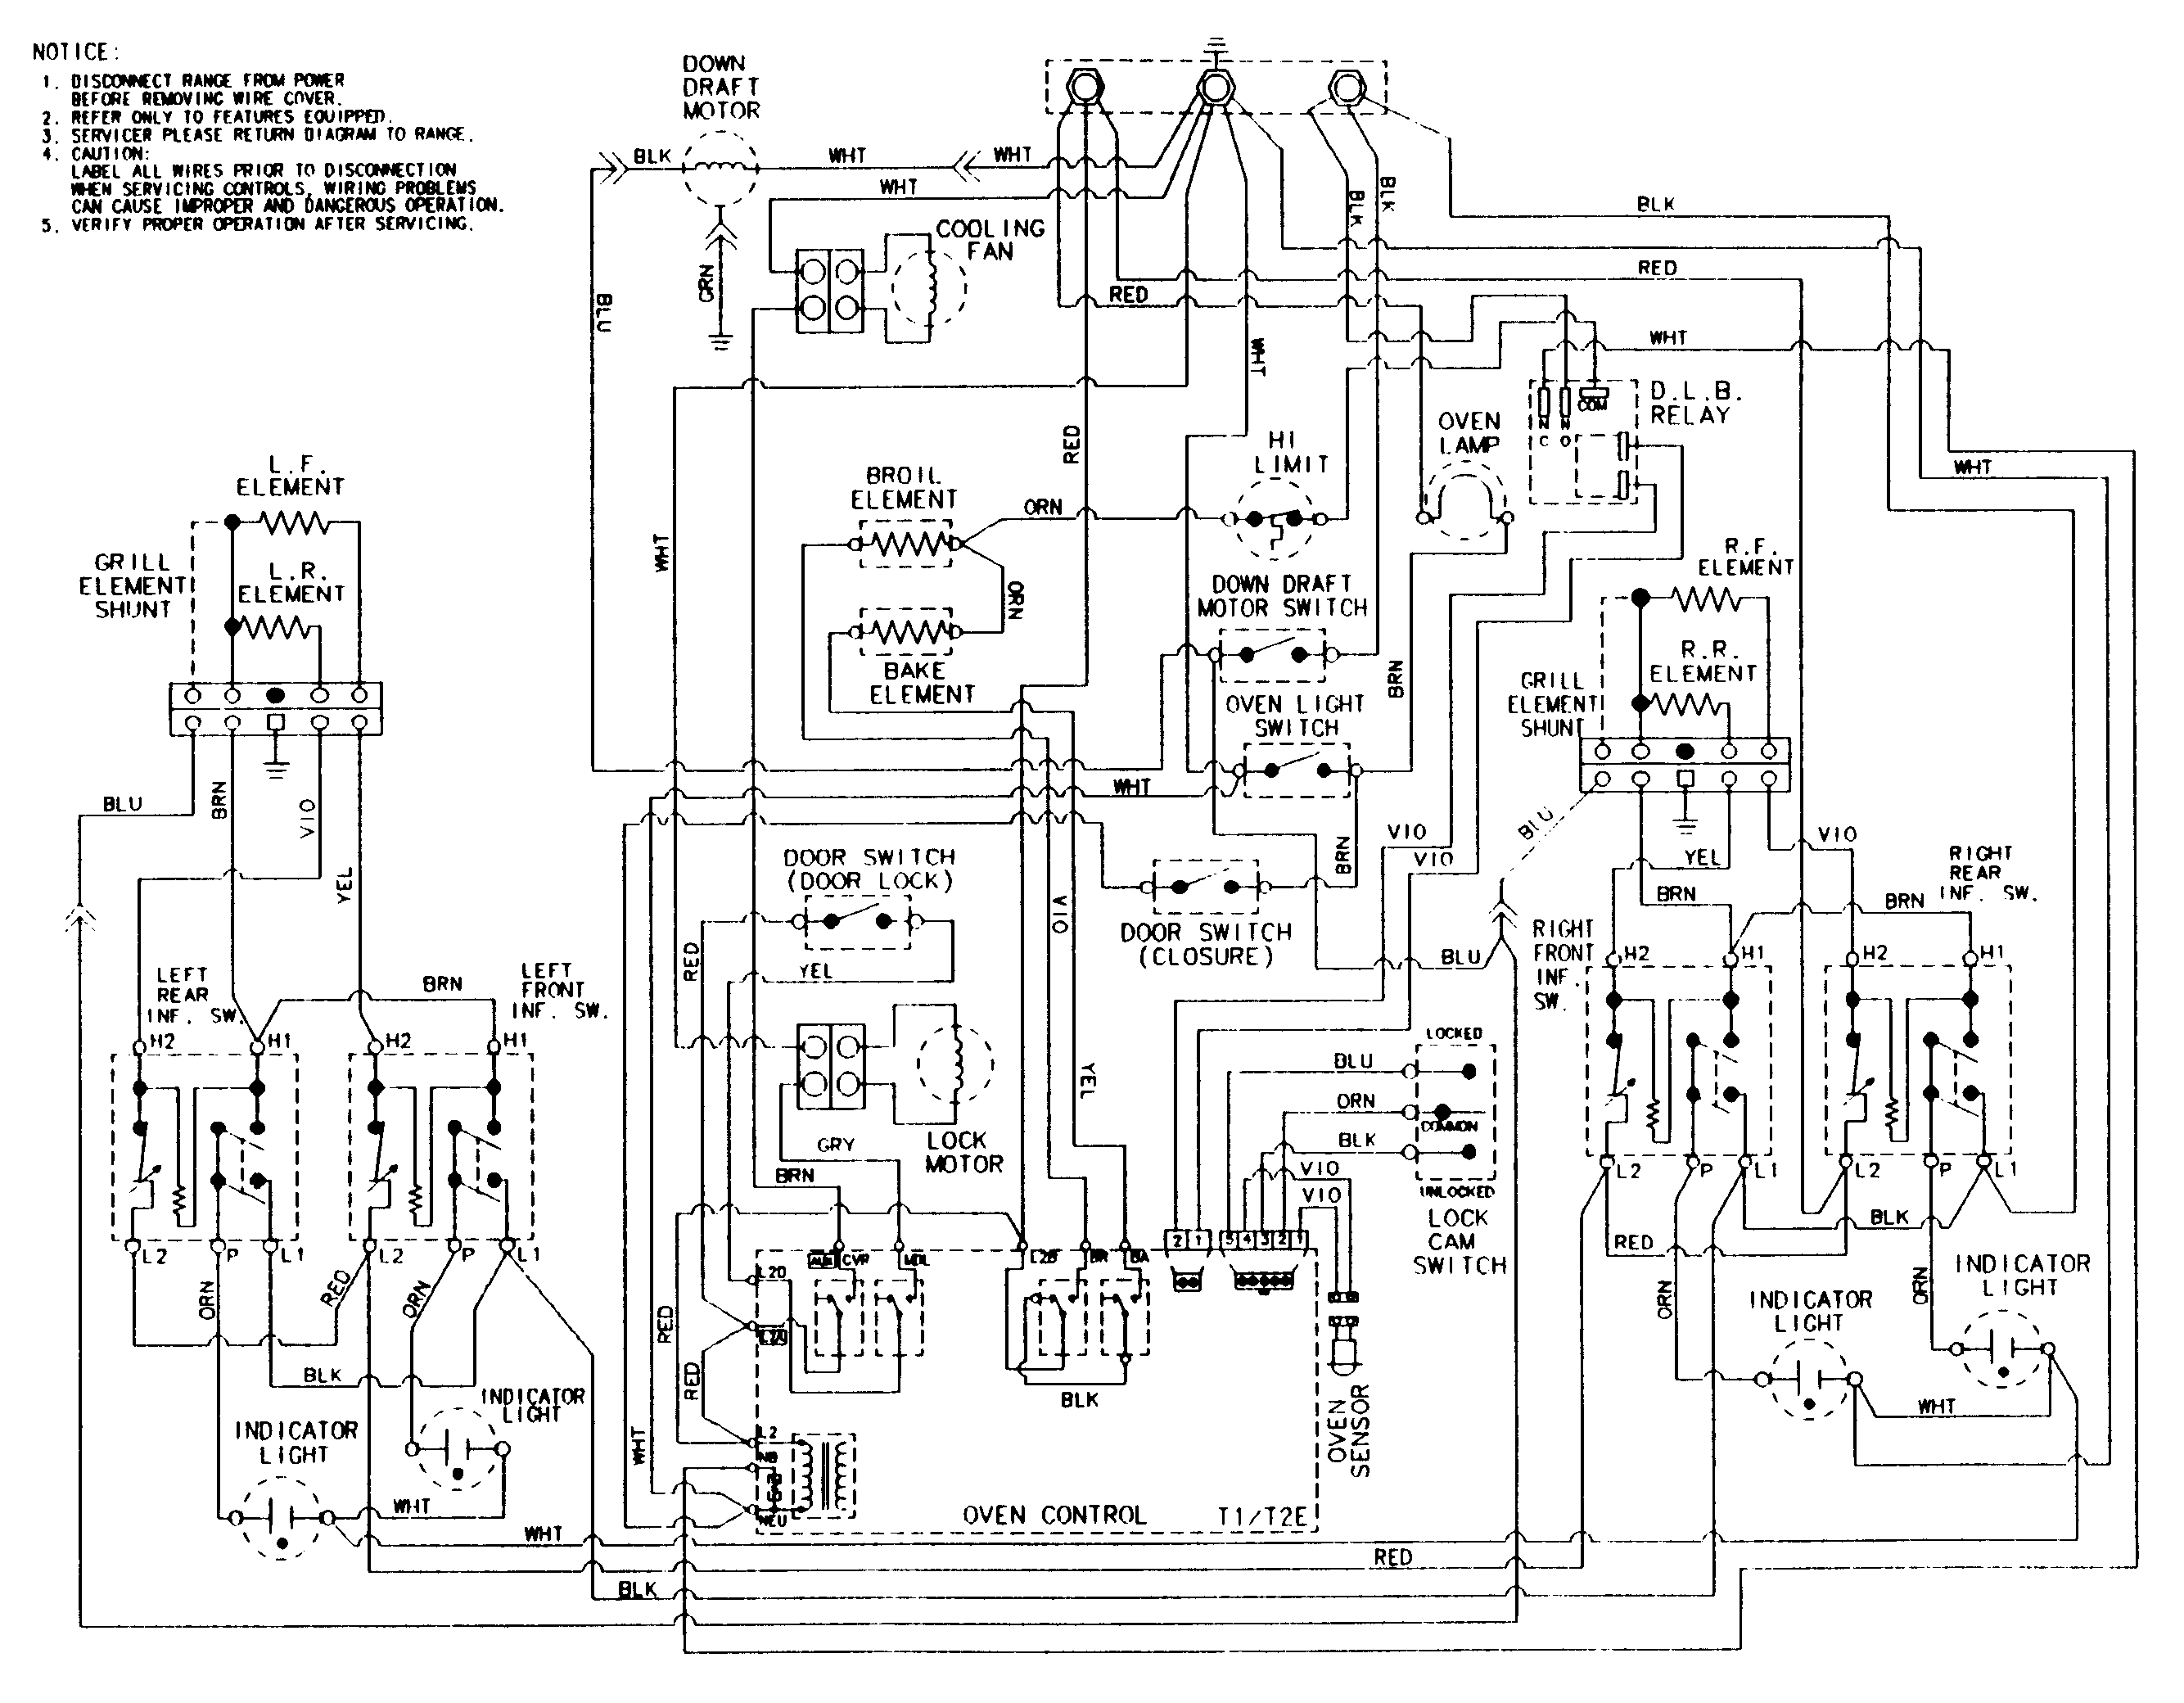 Wiring Diagram 9t51b0130 Library. Maytag Sve47100 Electric Slide In Range Timer Stove Clocks And Rh Appliancetimers Ca Wiring Diagrams Appliances Kitchen. Wiring. Stove Ladder Wiring Diagram At Scoala.co